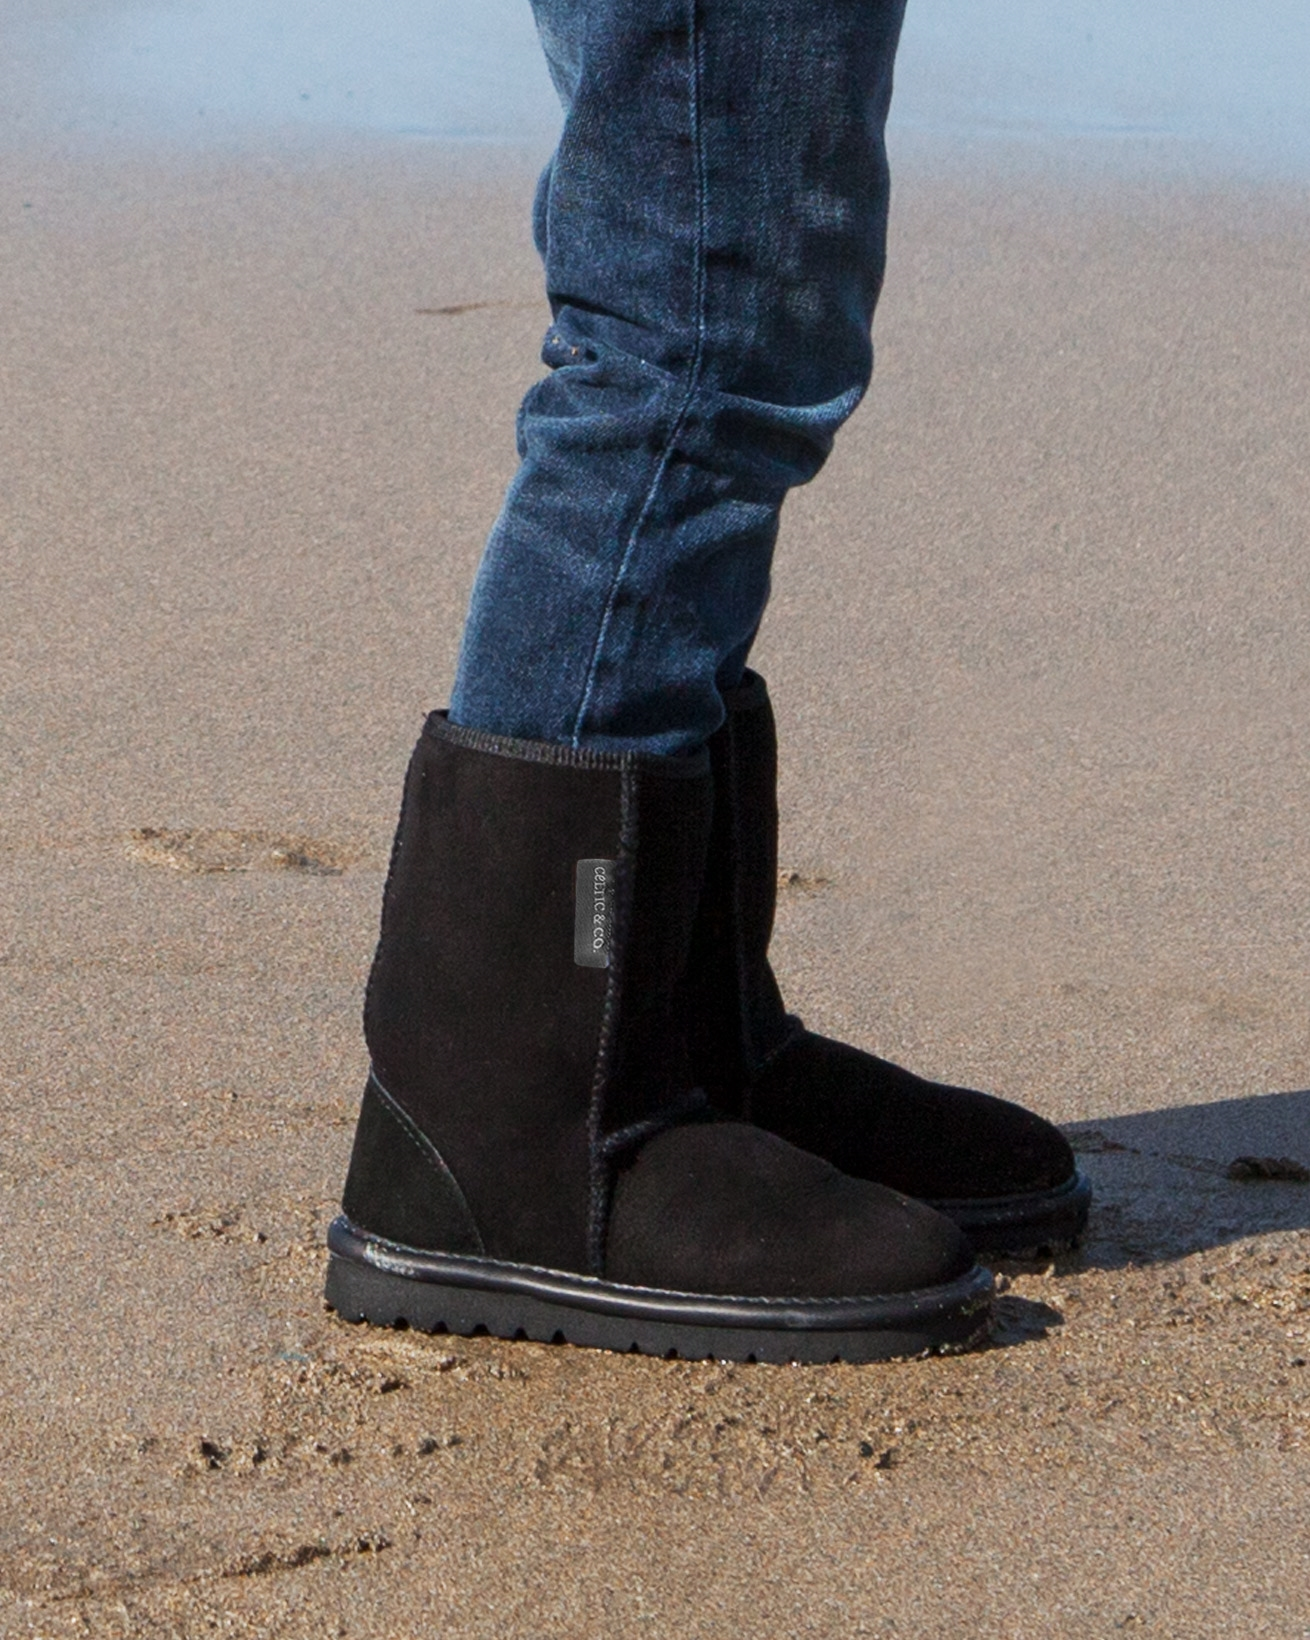 2404-lfs-mini classic boot_black.jpg